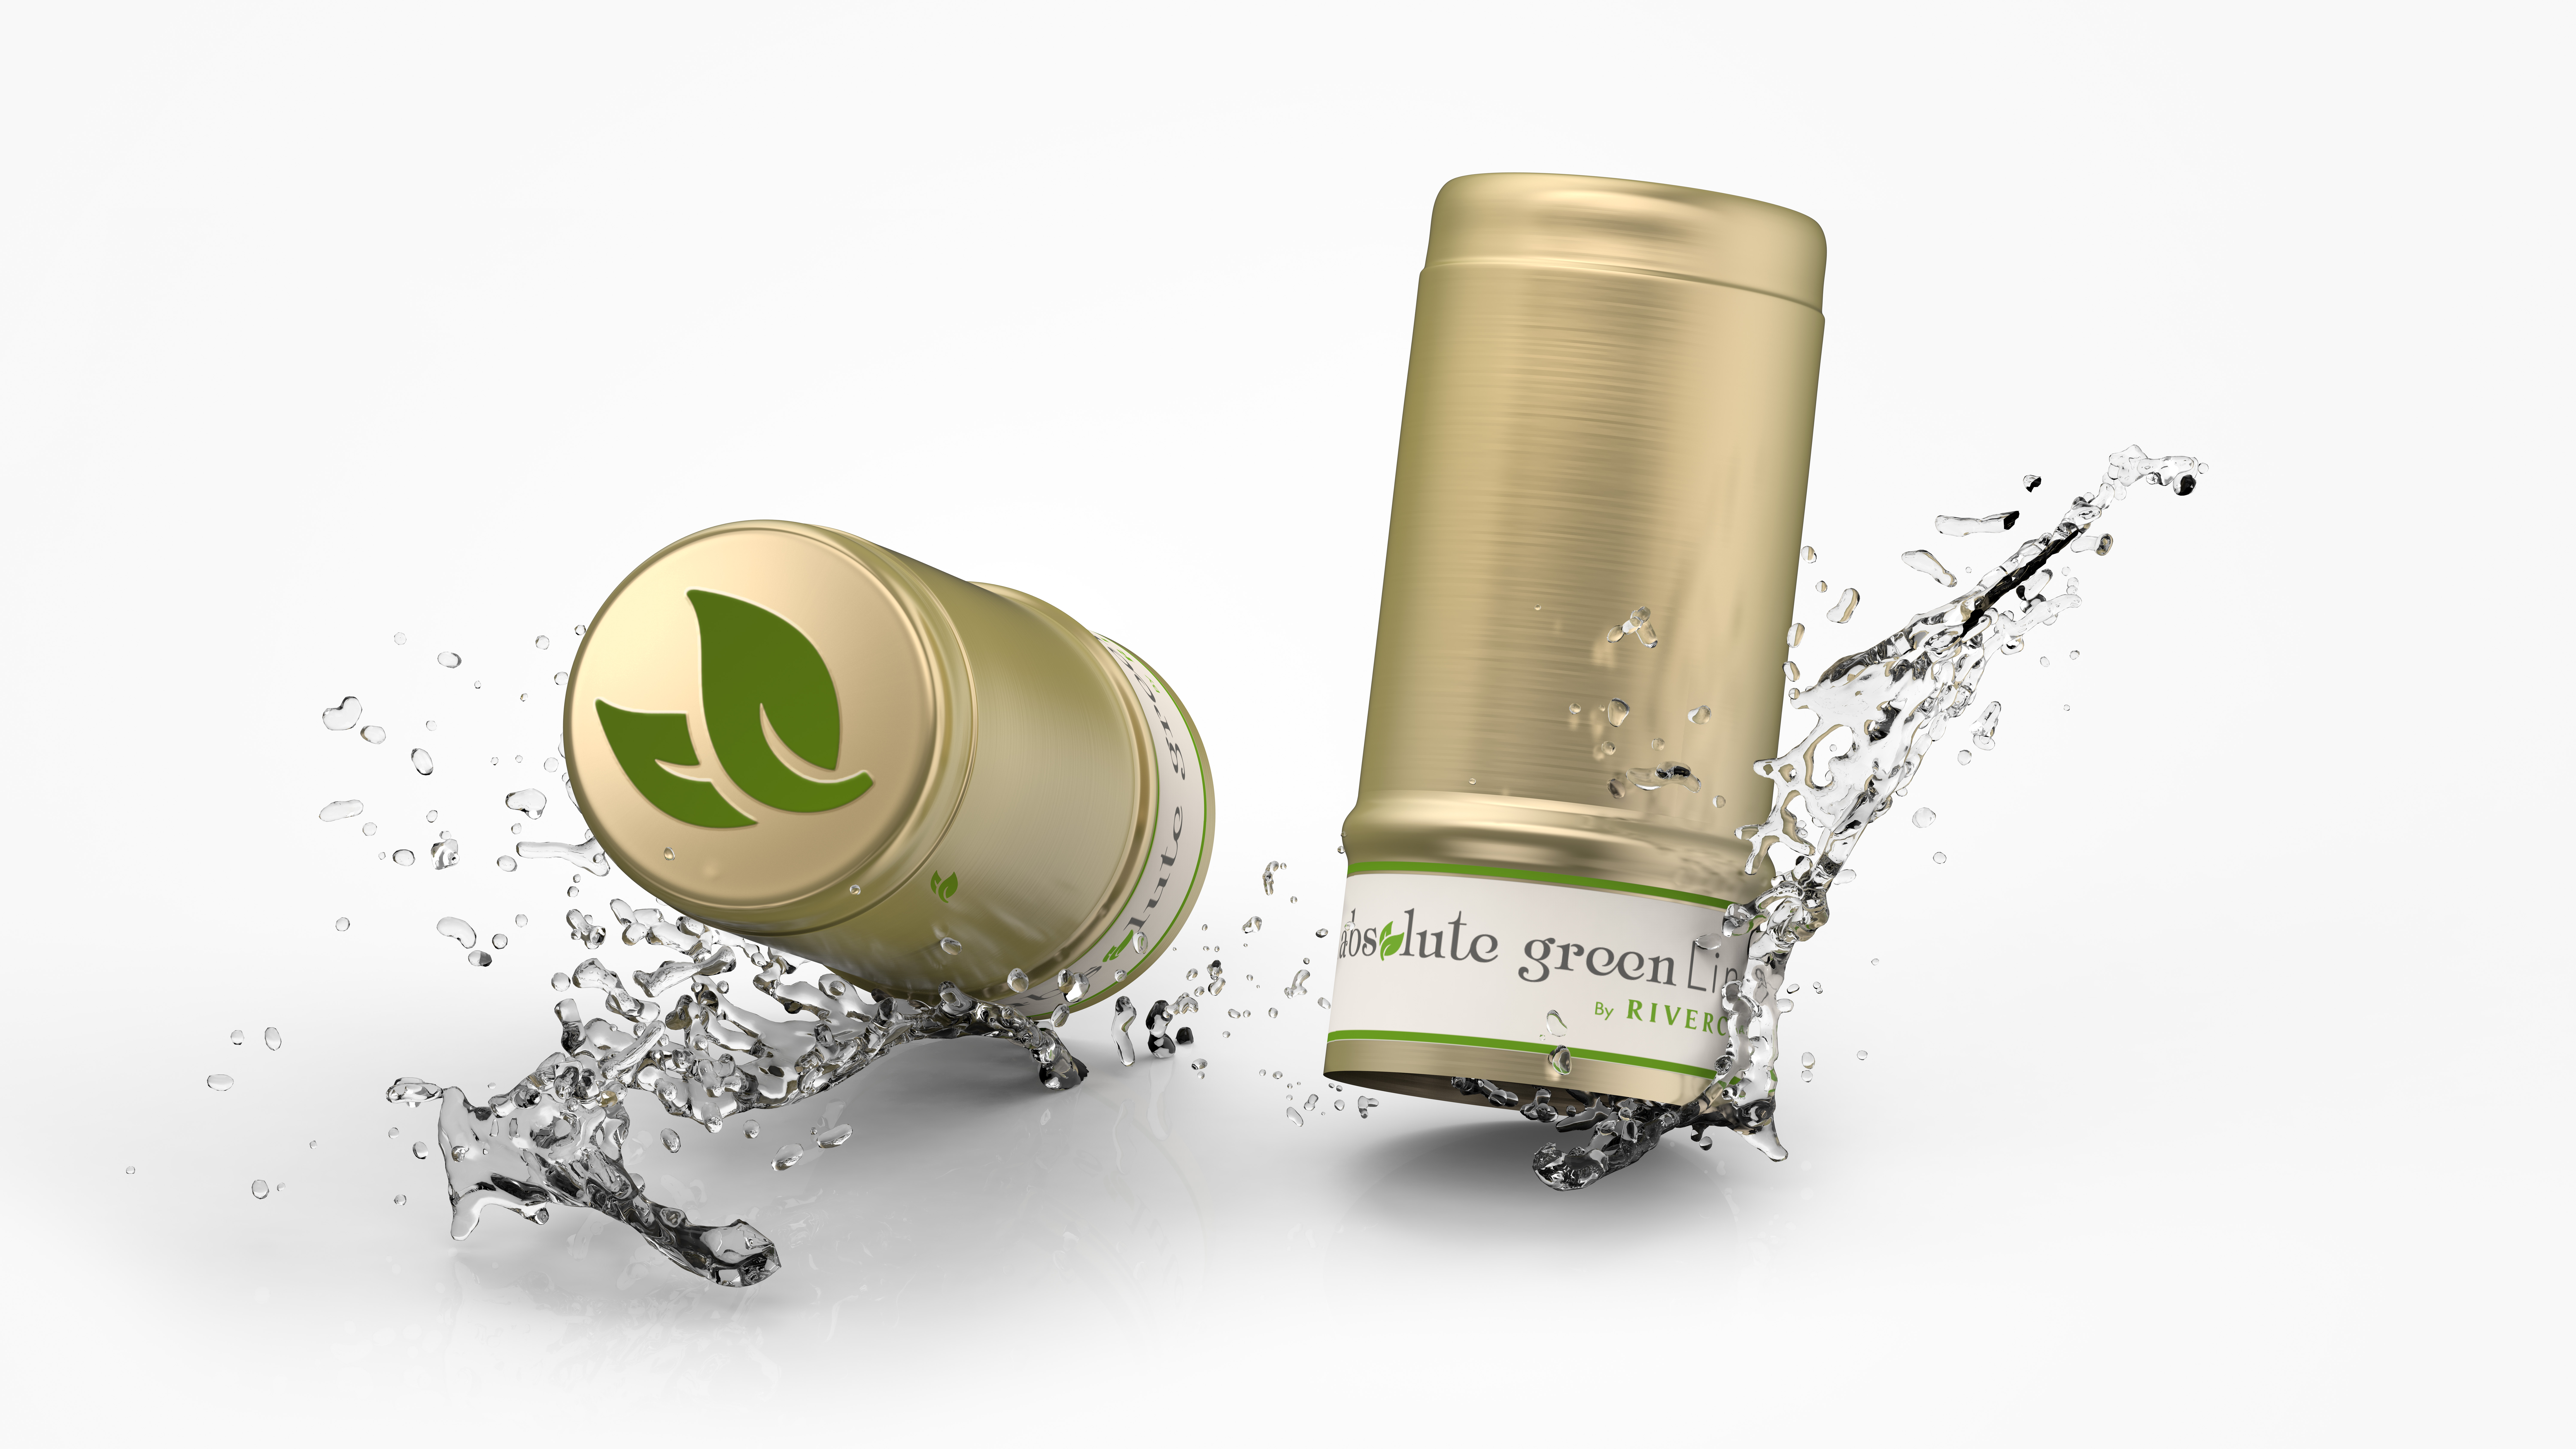 At Sparflex, Absolute Green Line is gaining ground